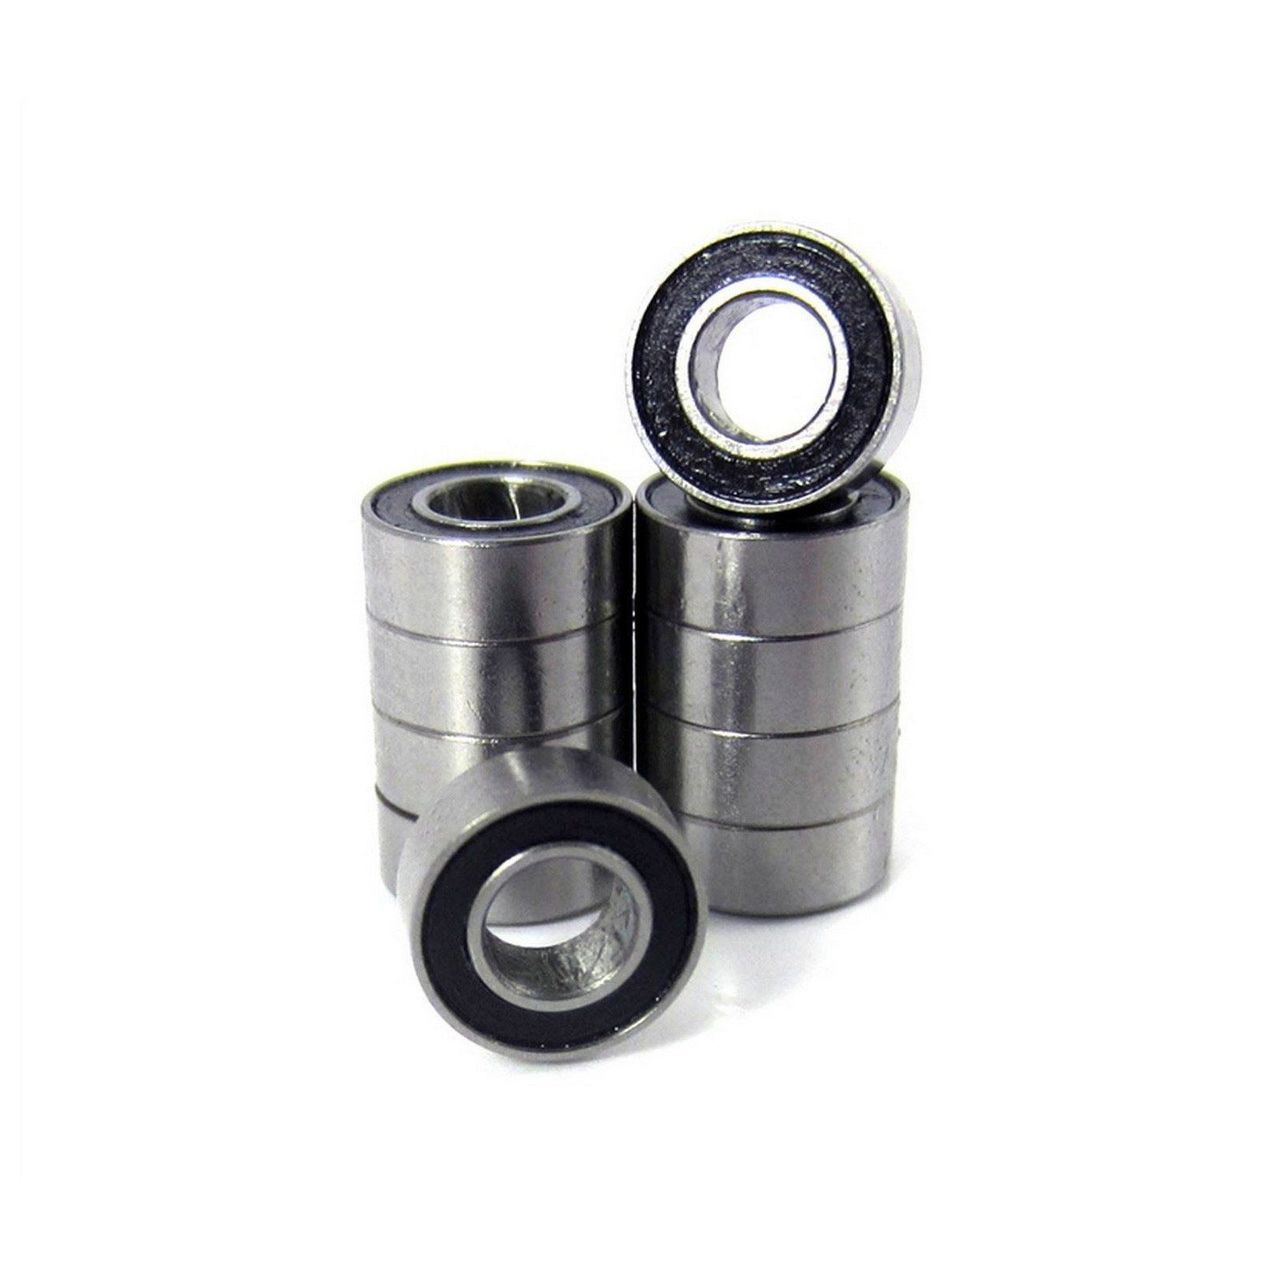 TRB RC 4x8x3mm Precision Ball Bearings ABEC 3 Rubber Sealed (10)